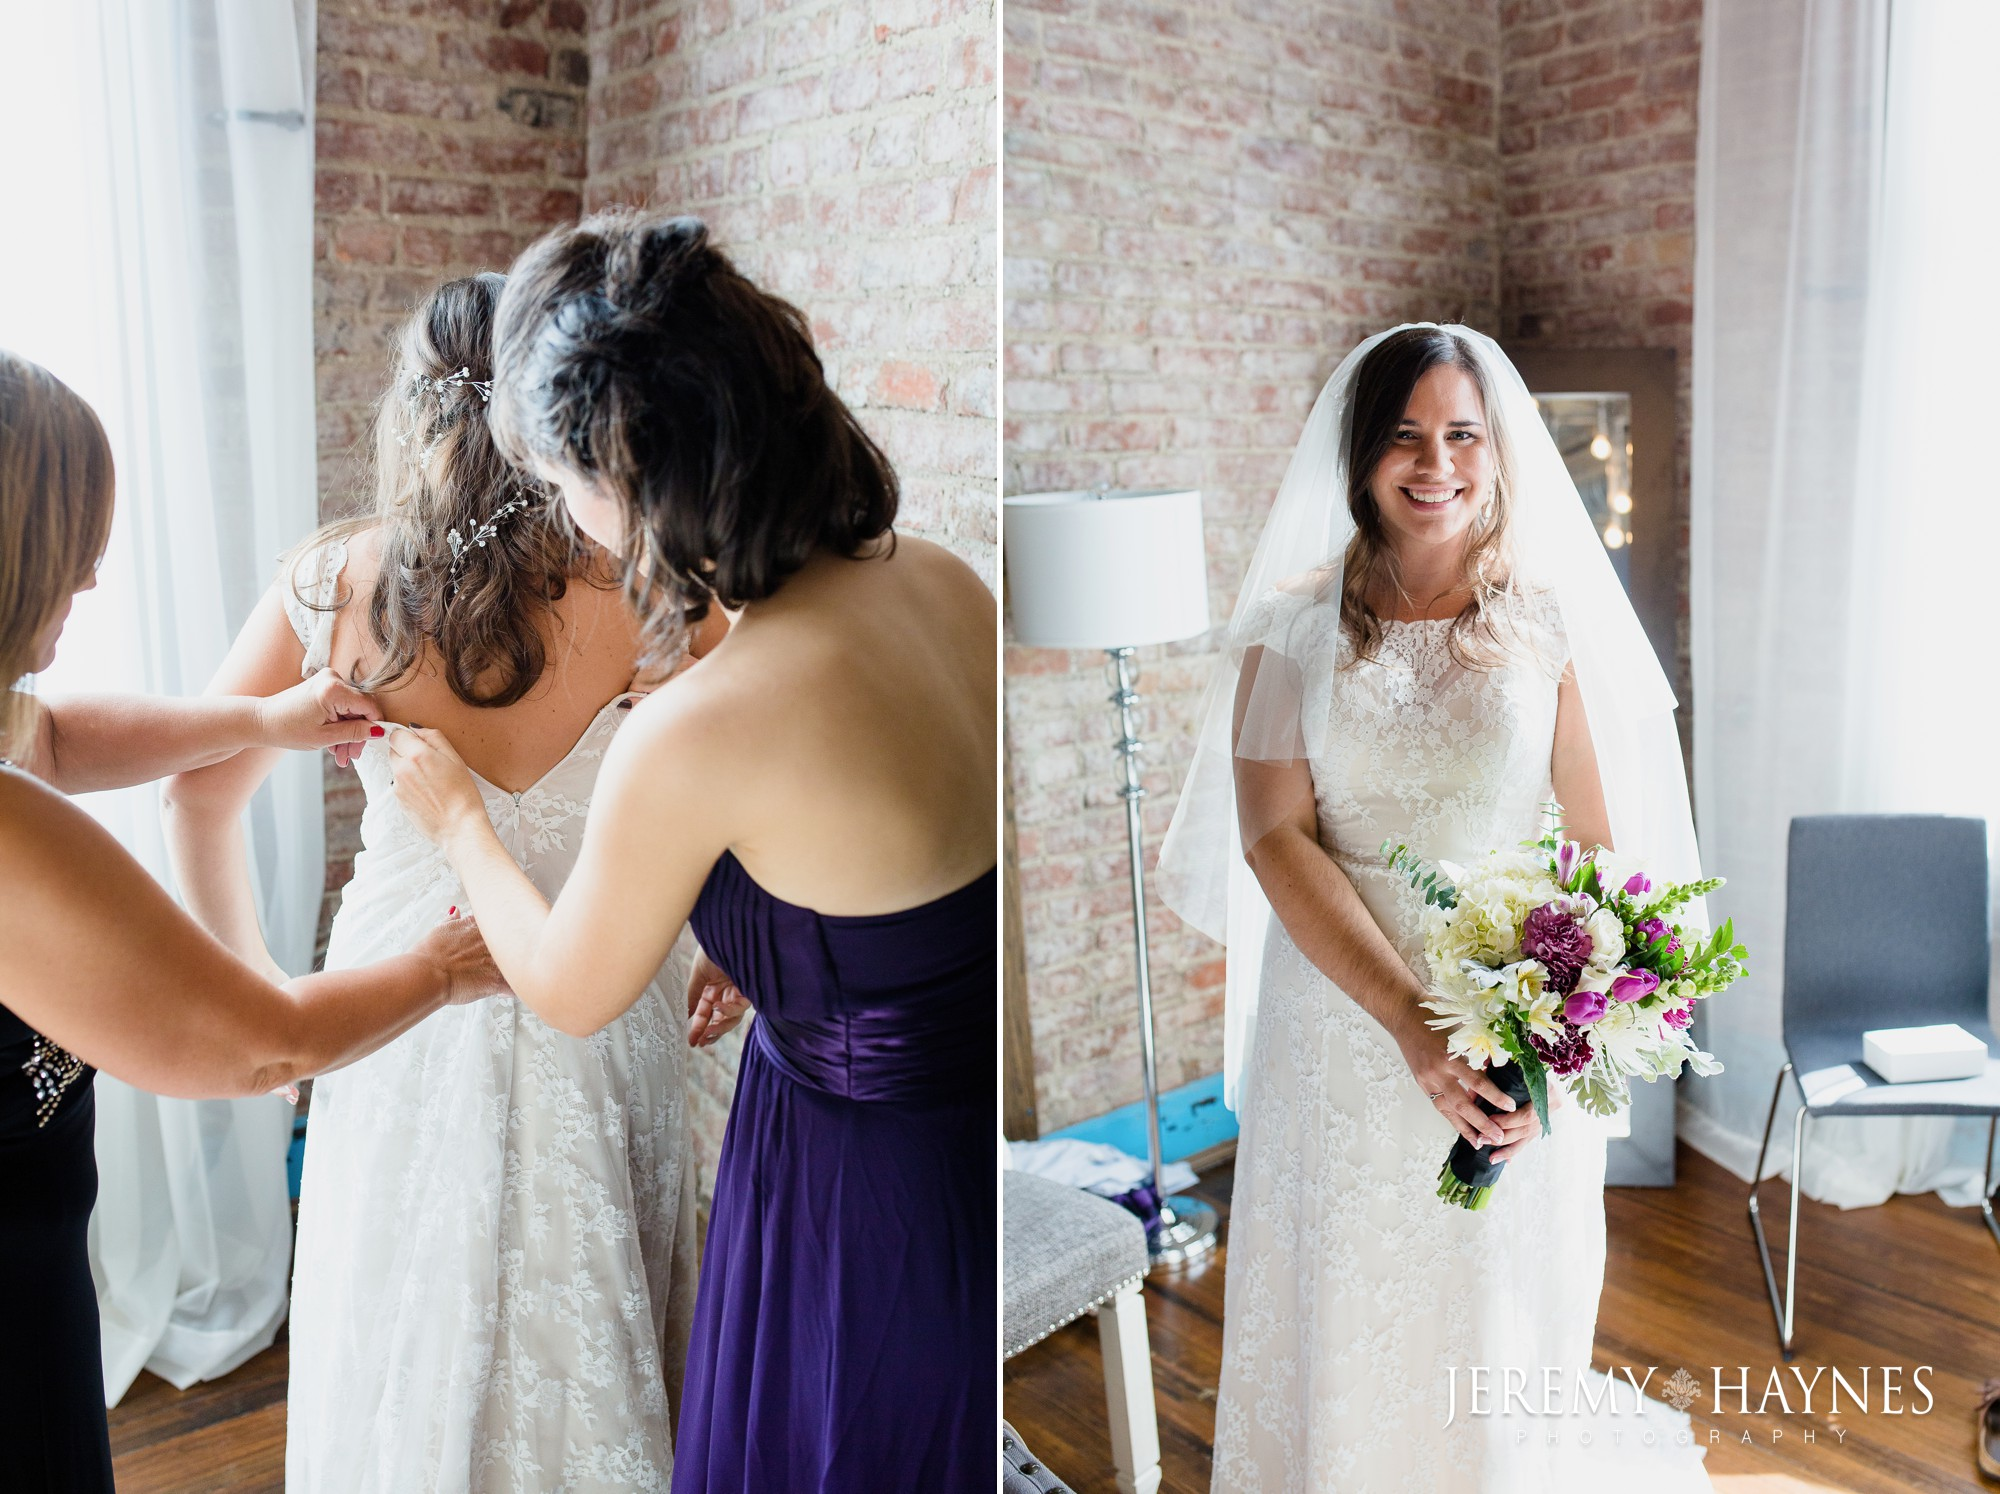 bride-at-neidhammer-wedding.jpg